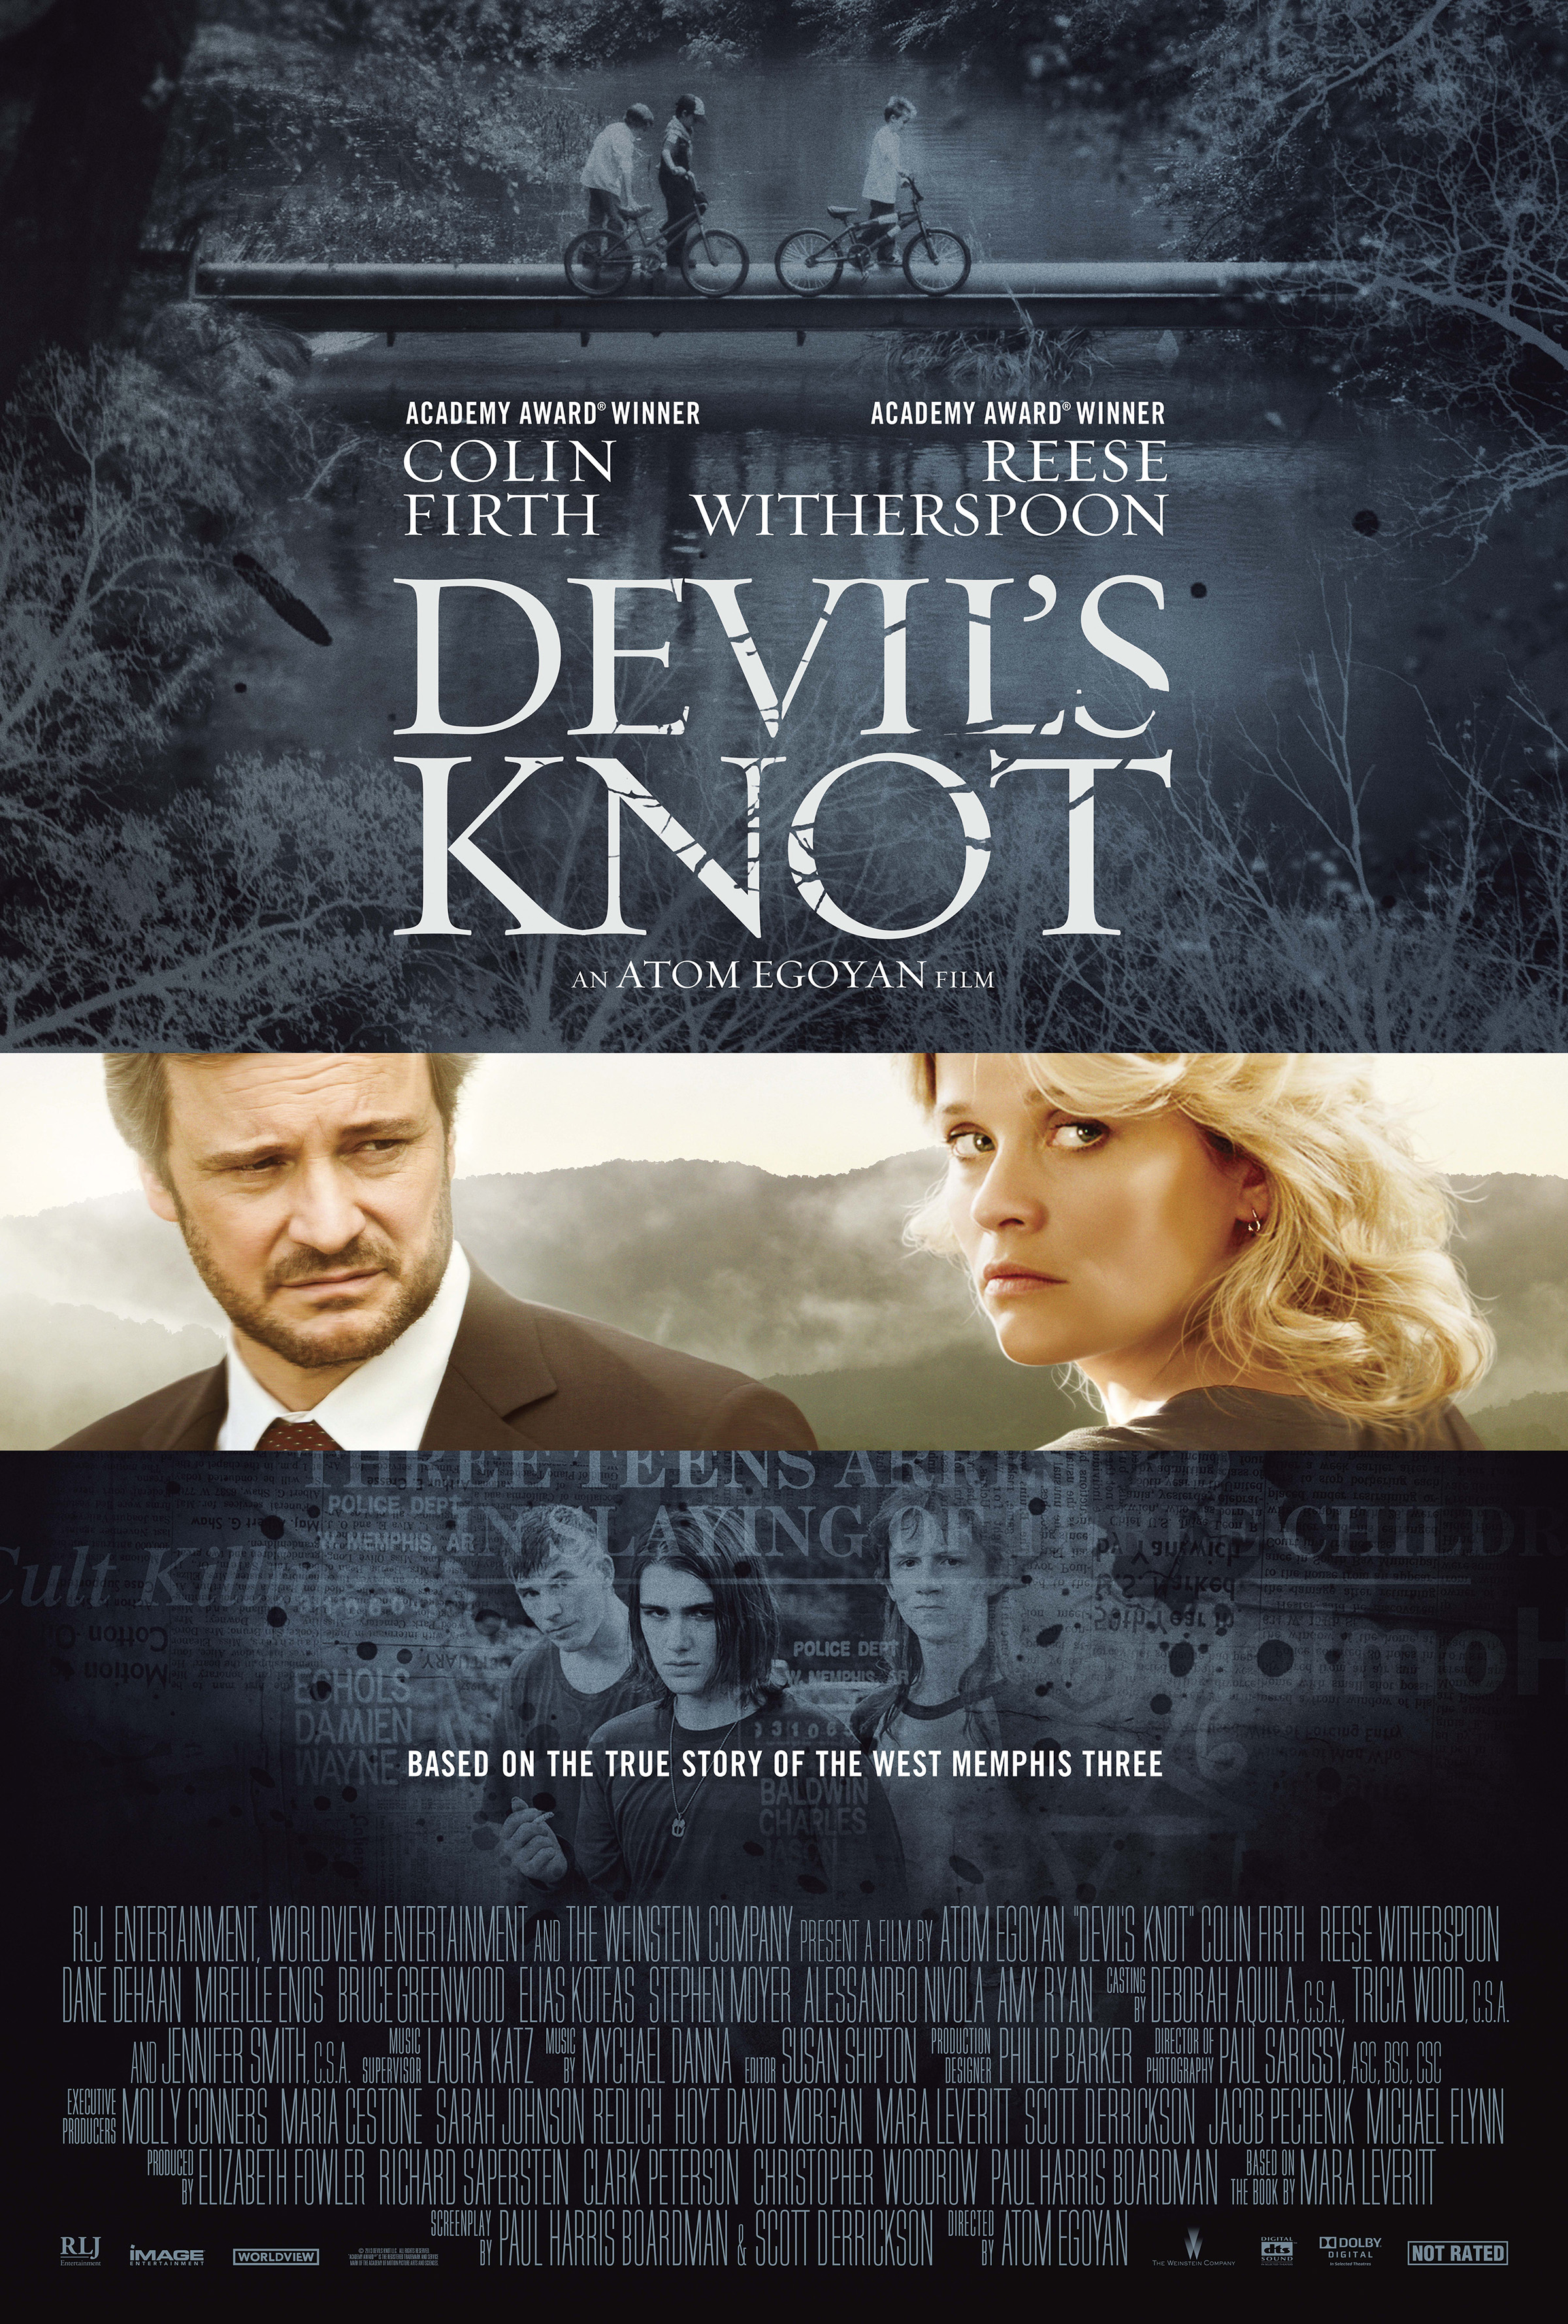 Devil's Knot Poster Featuring Reese Witherspoon